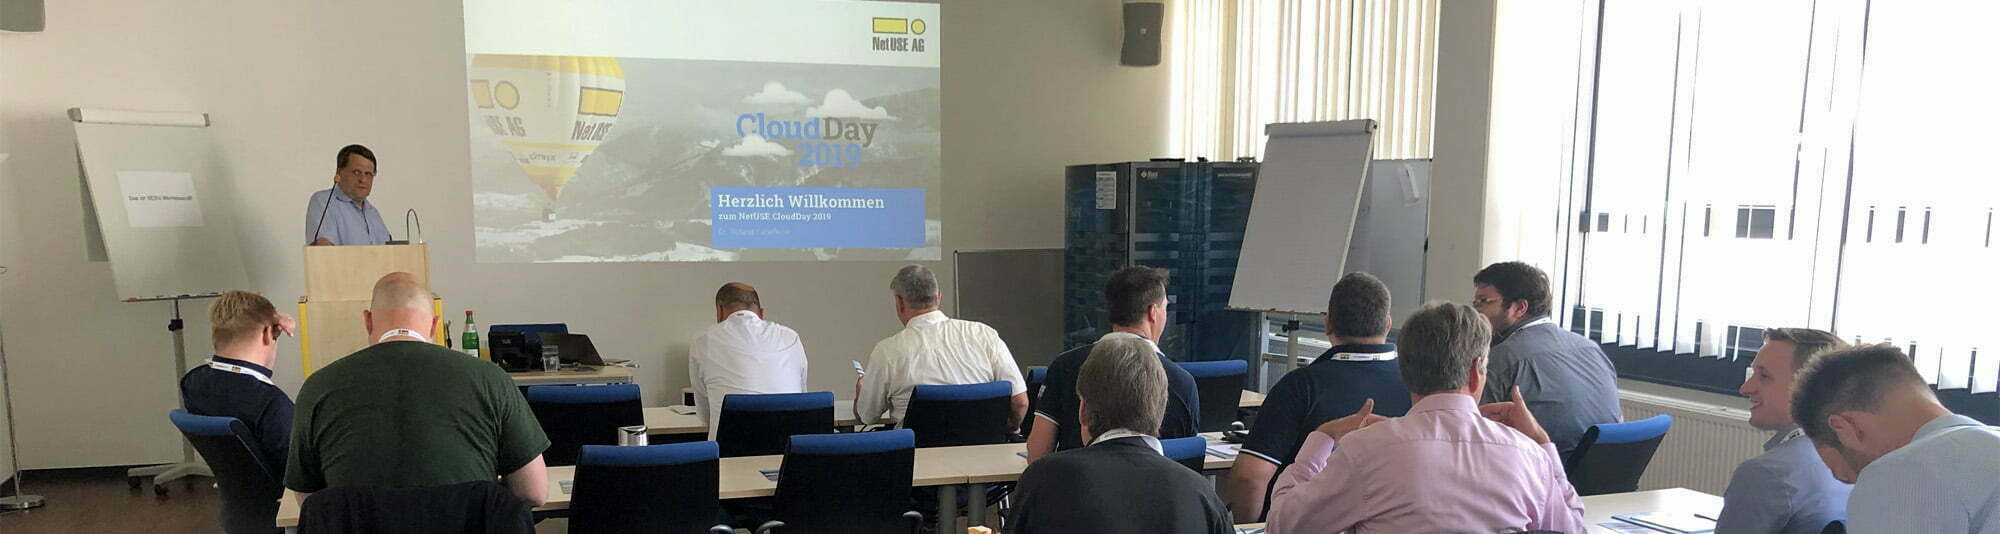 NetUSE CloudDay 2019